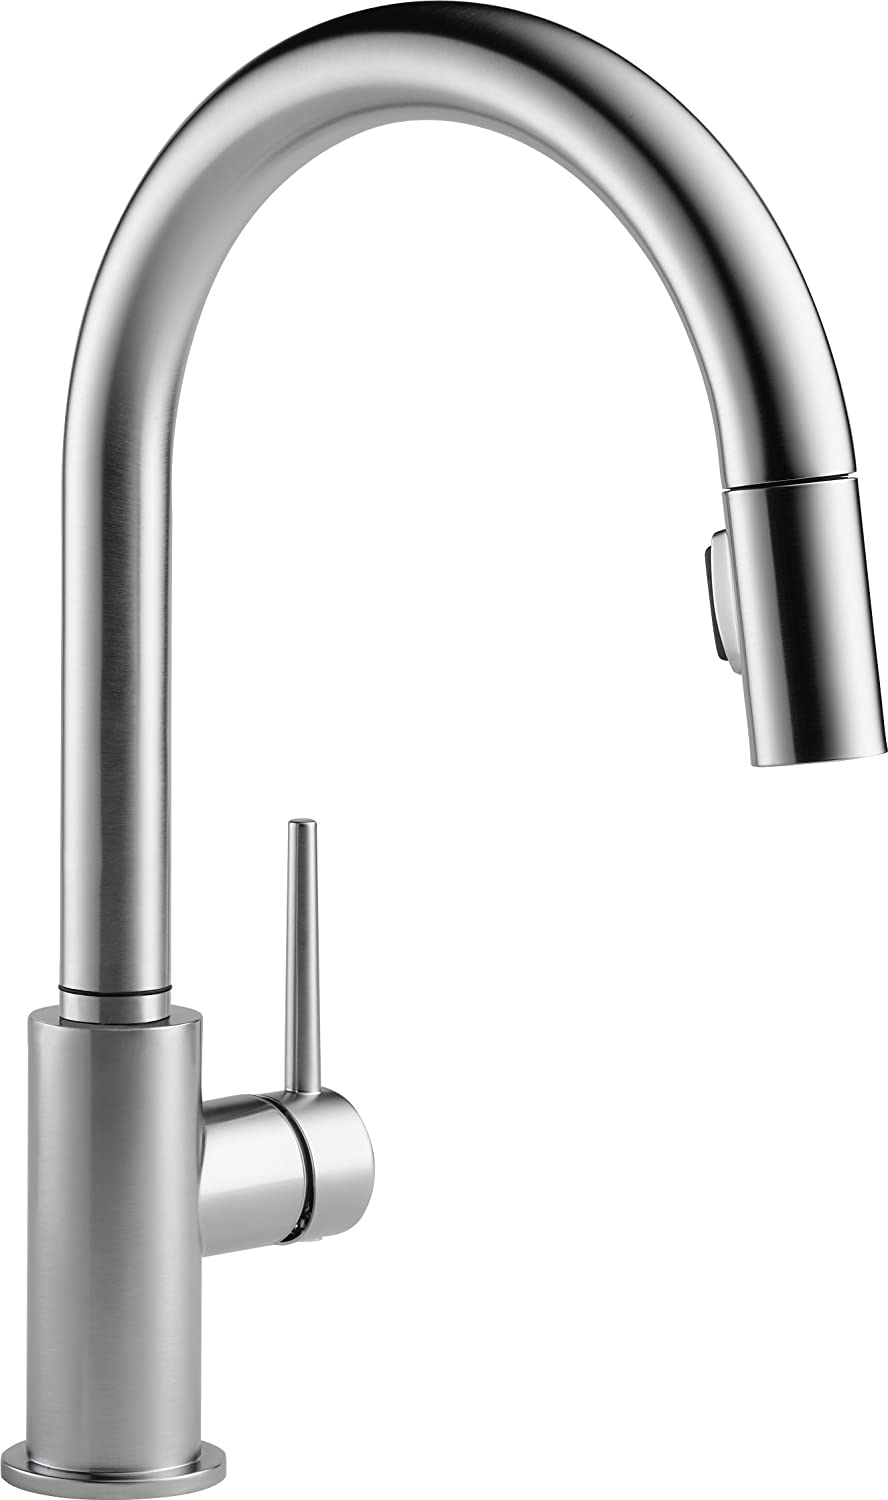 best on faucets top kitchen faucet recommendations and reviews sale